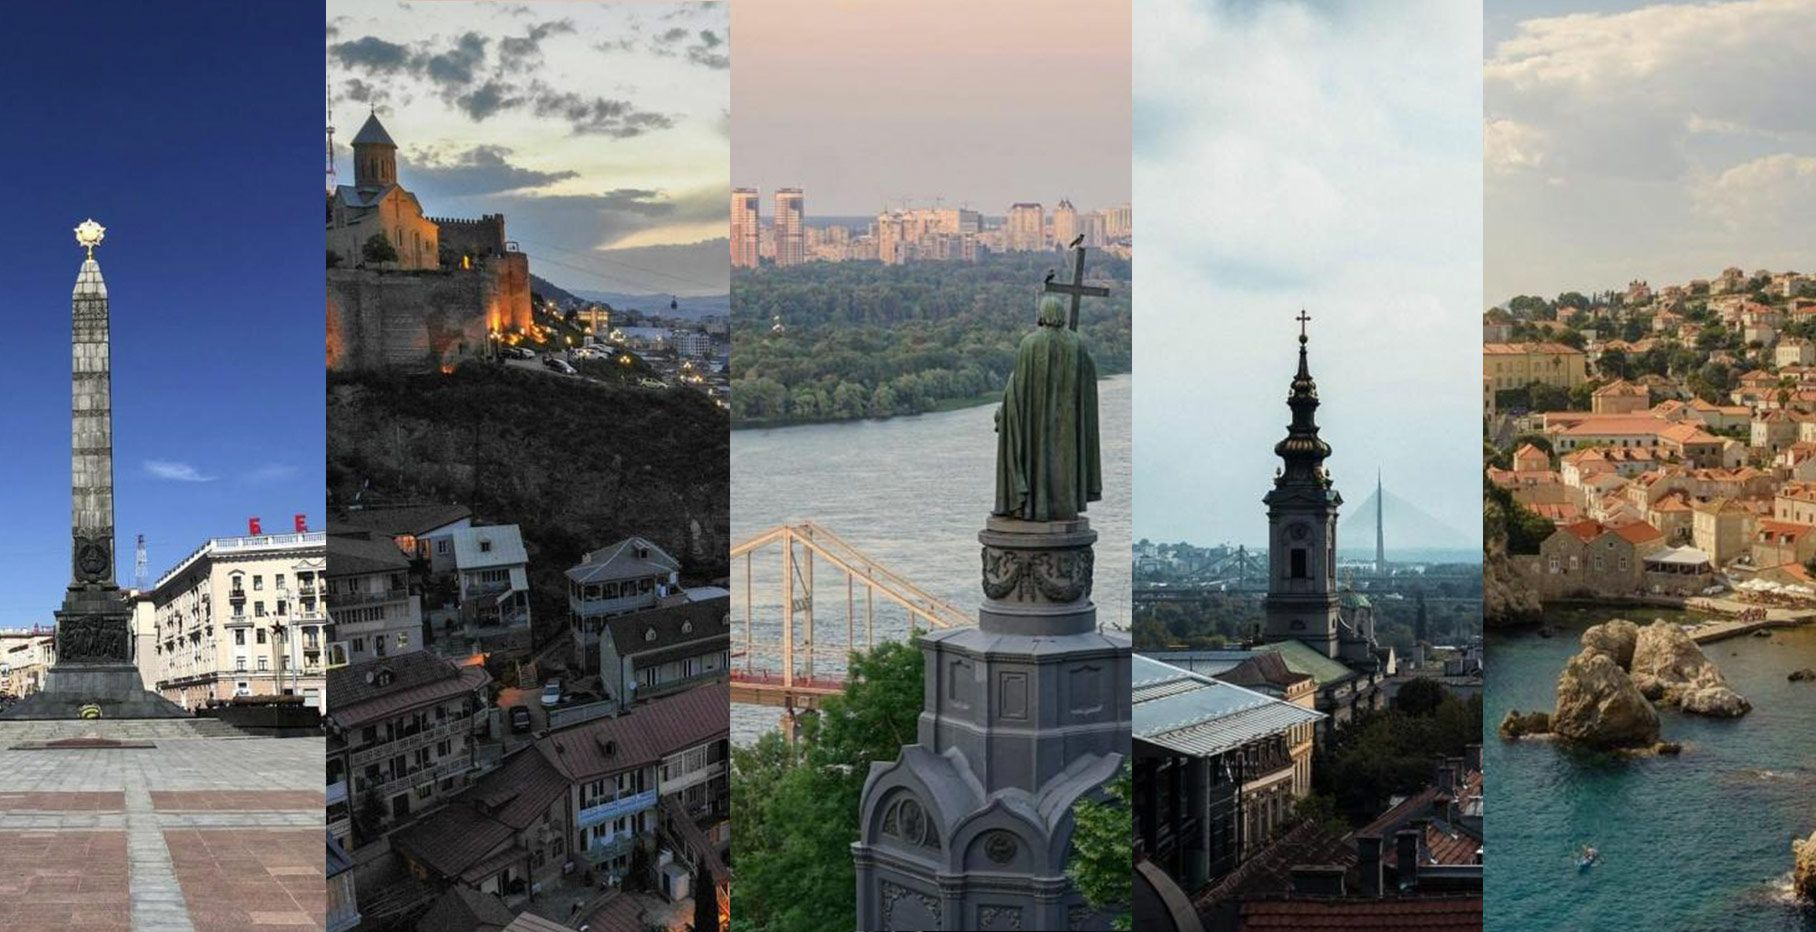 Clubbing in the COVID-19 era: How 5 Eastern European countries are reacting to coronavirus